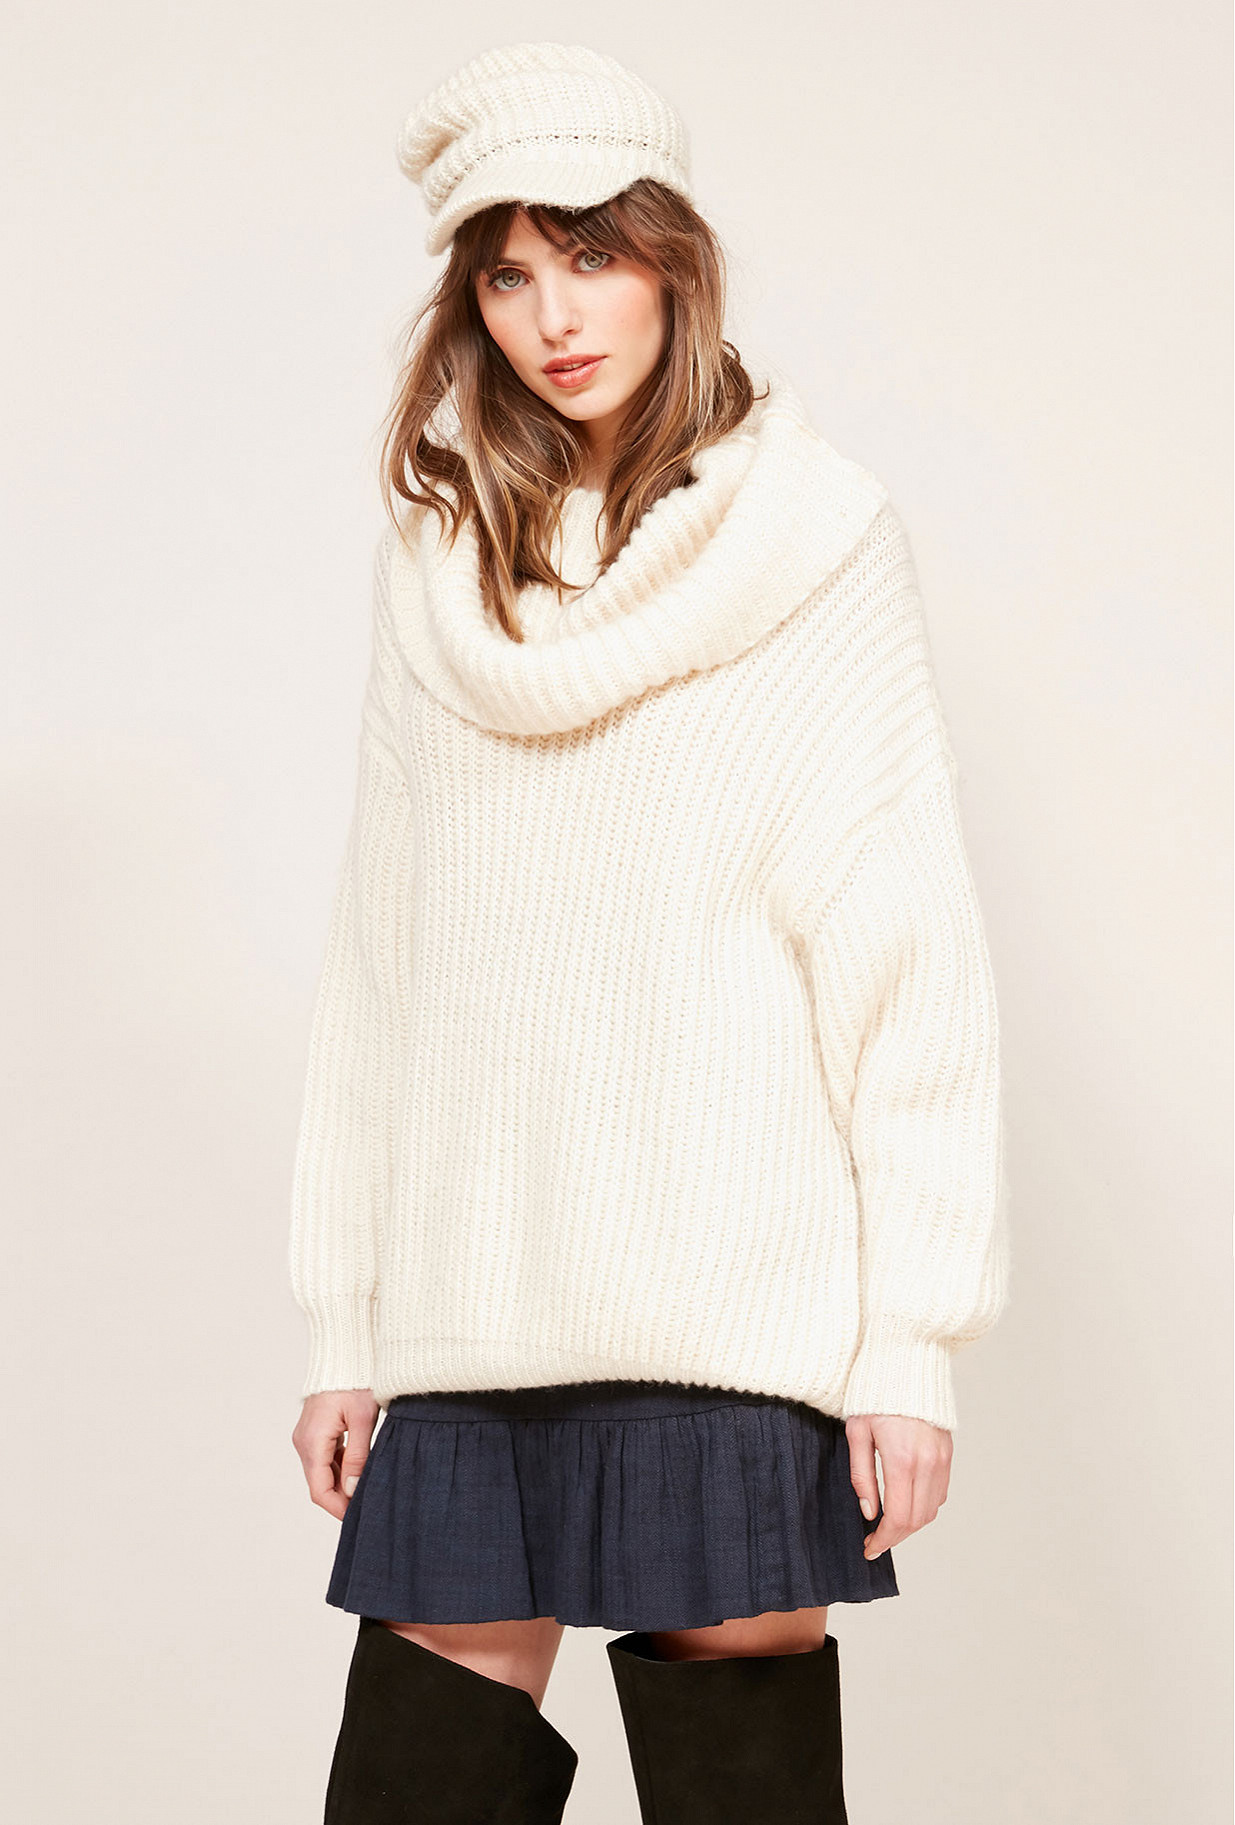 Paris clothes store Sweater  Willow french designer fashion Paris